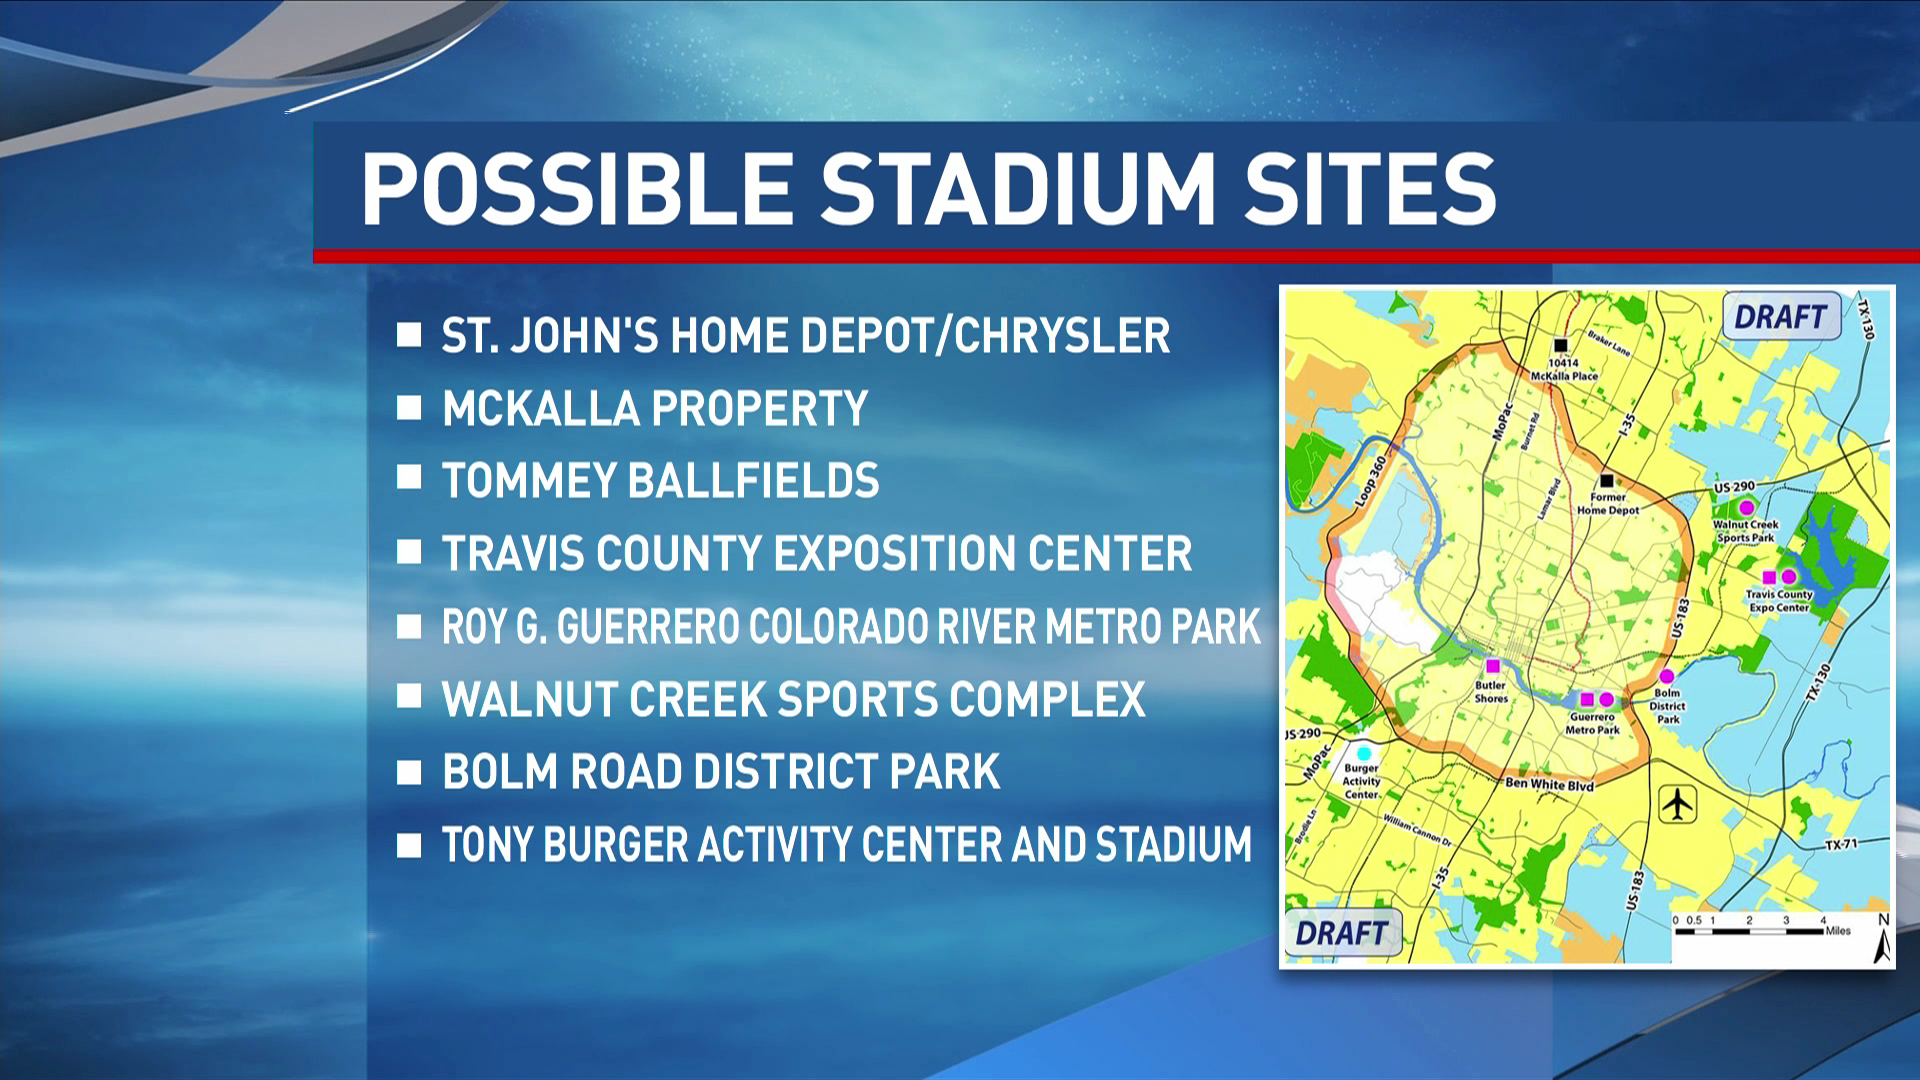 The City of Austin has released an official list of potential sites for a Major League Soccer stadium. (Image courtesy: City of Austin)